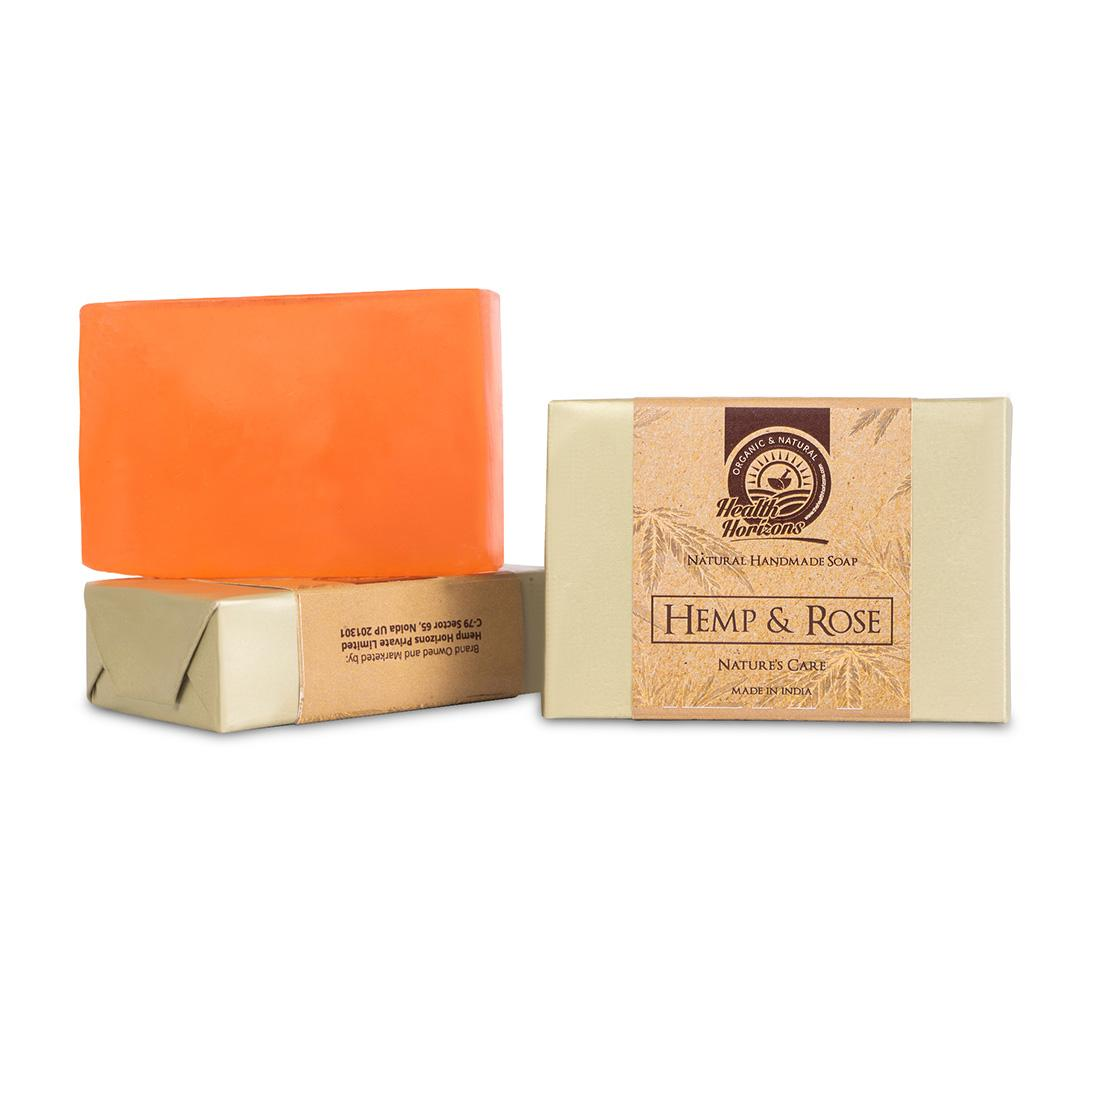 organic soap with rose extract and hemp pack 2